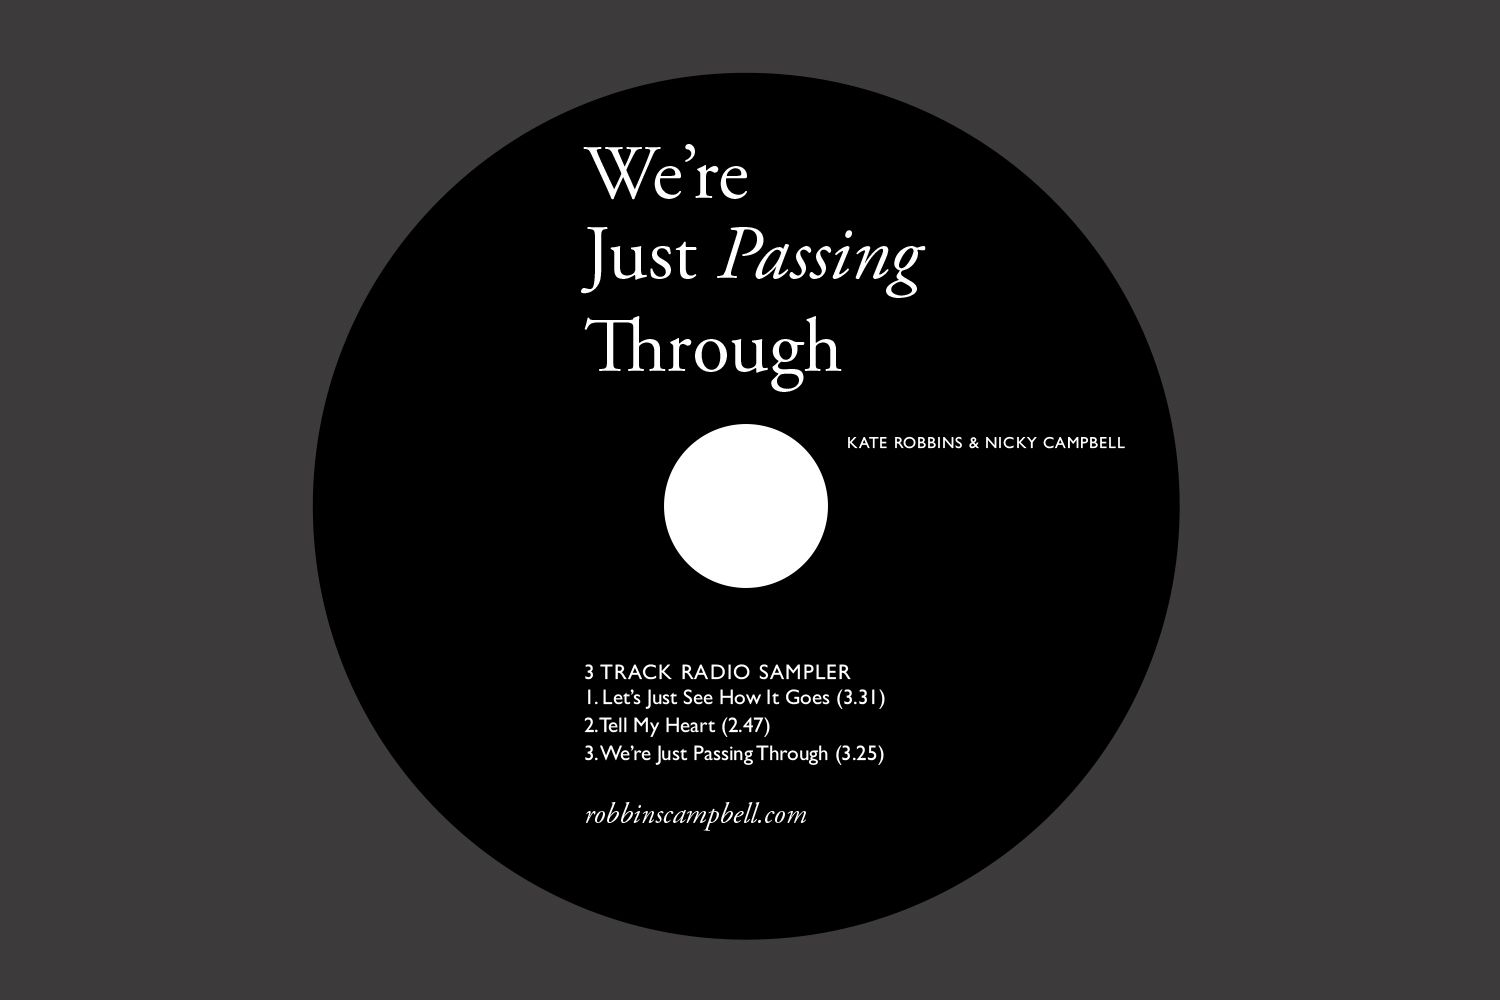 CD cover 5